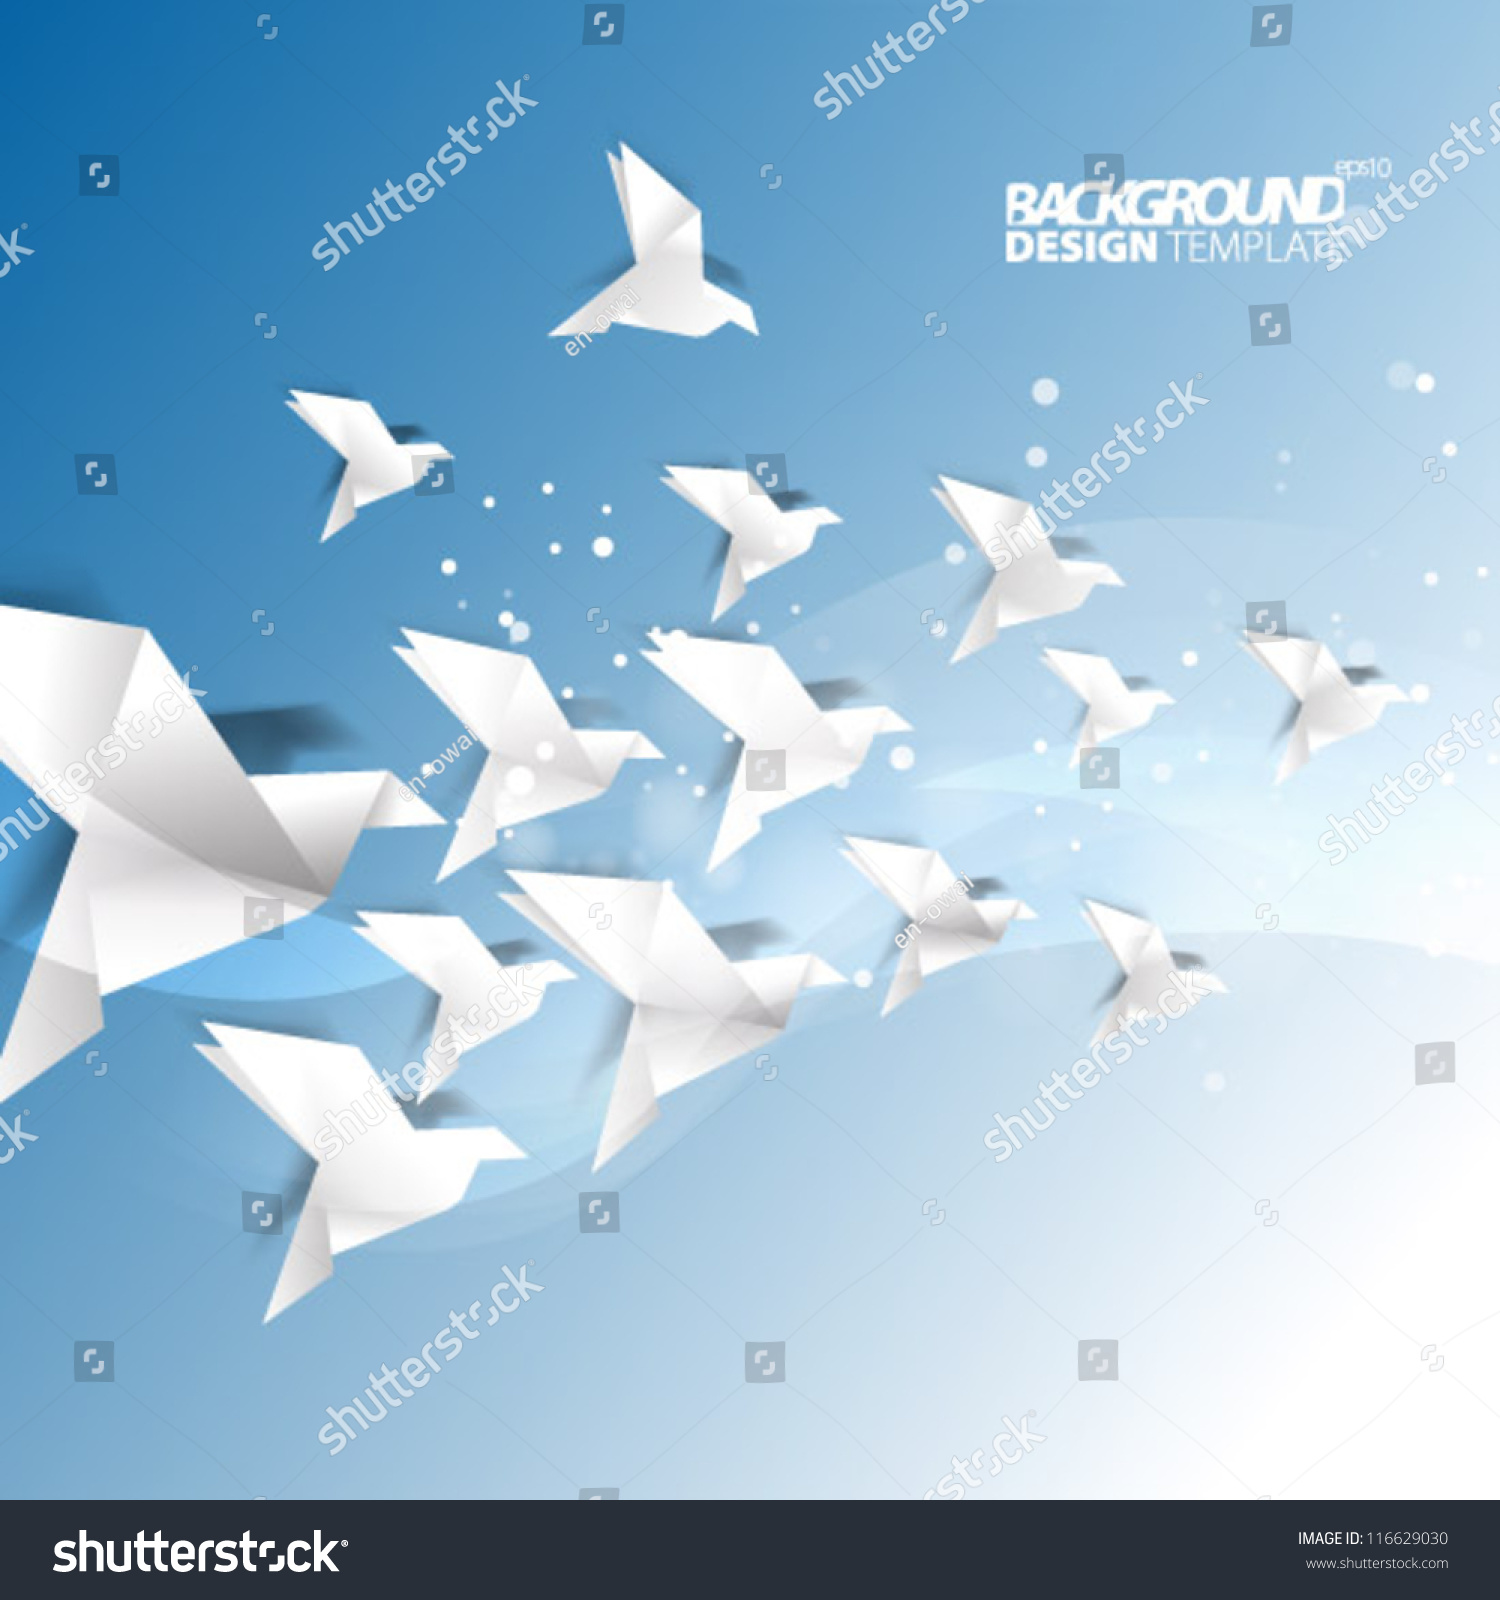 Design Template Eps10 Floating Origami Background Stock Vector